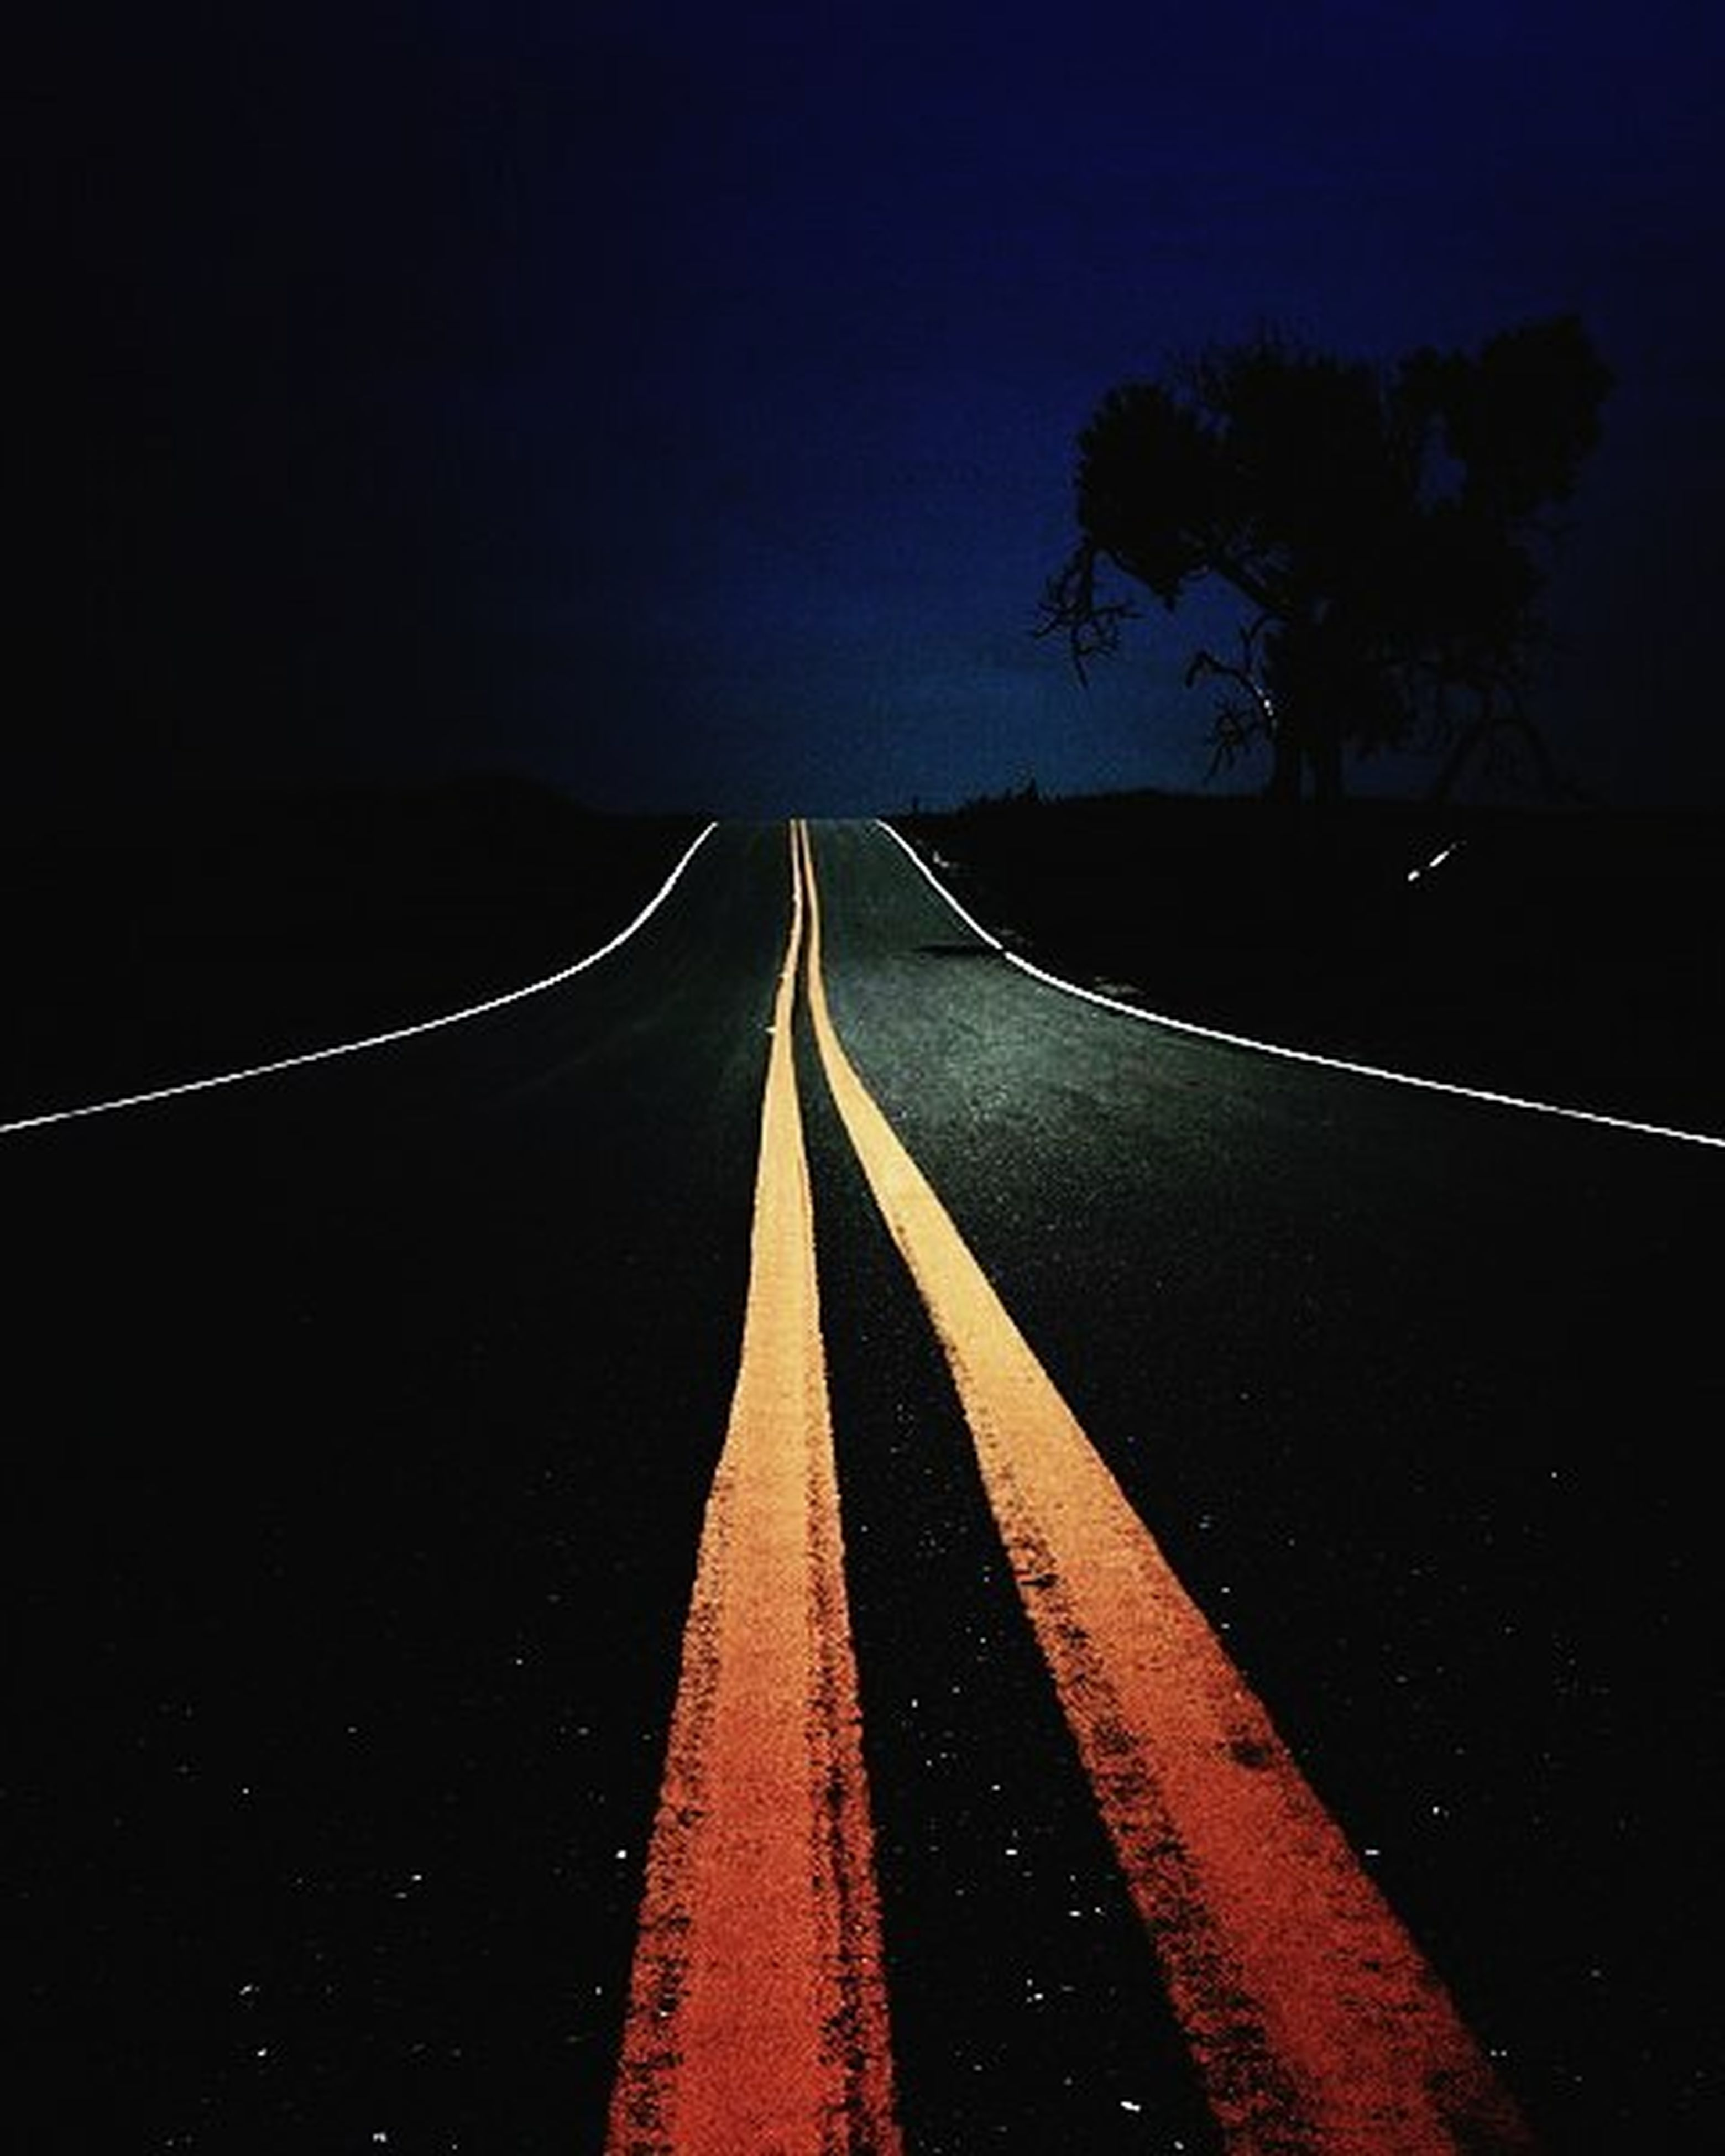 the way forward, diminishing perspective, vanishing point, night, transportation, road, illuminated, clear sky, long, tree, road marking, copy space, outdoors, no people, in a row, street, tranquility, nature, light trail, empty road